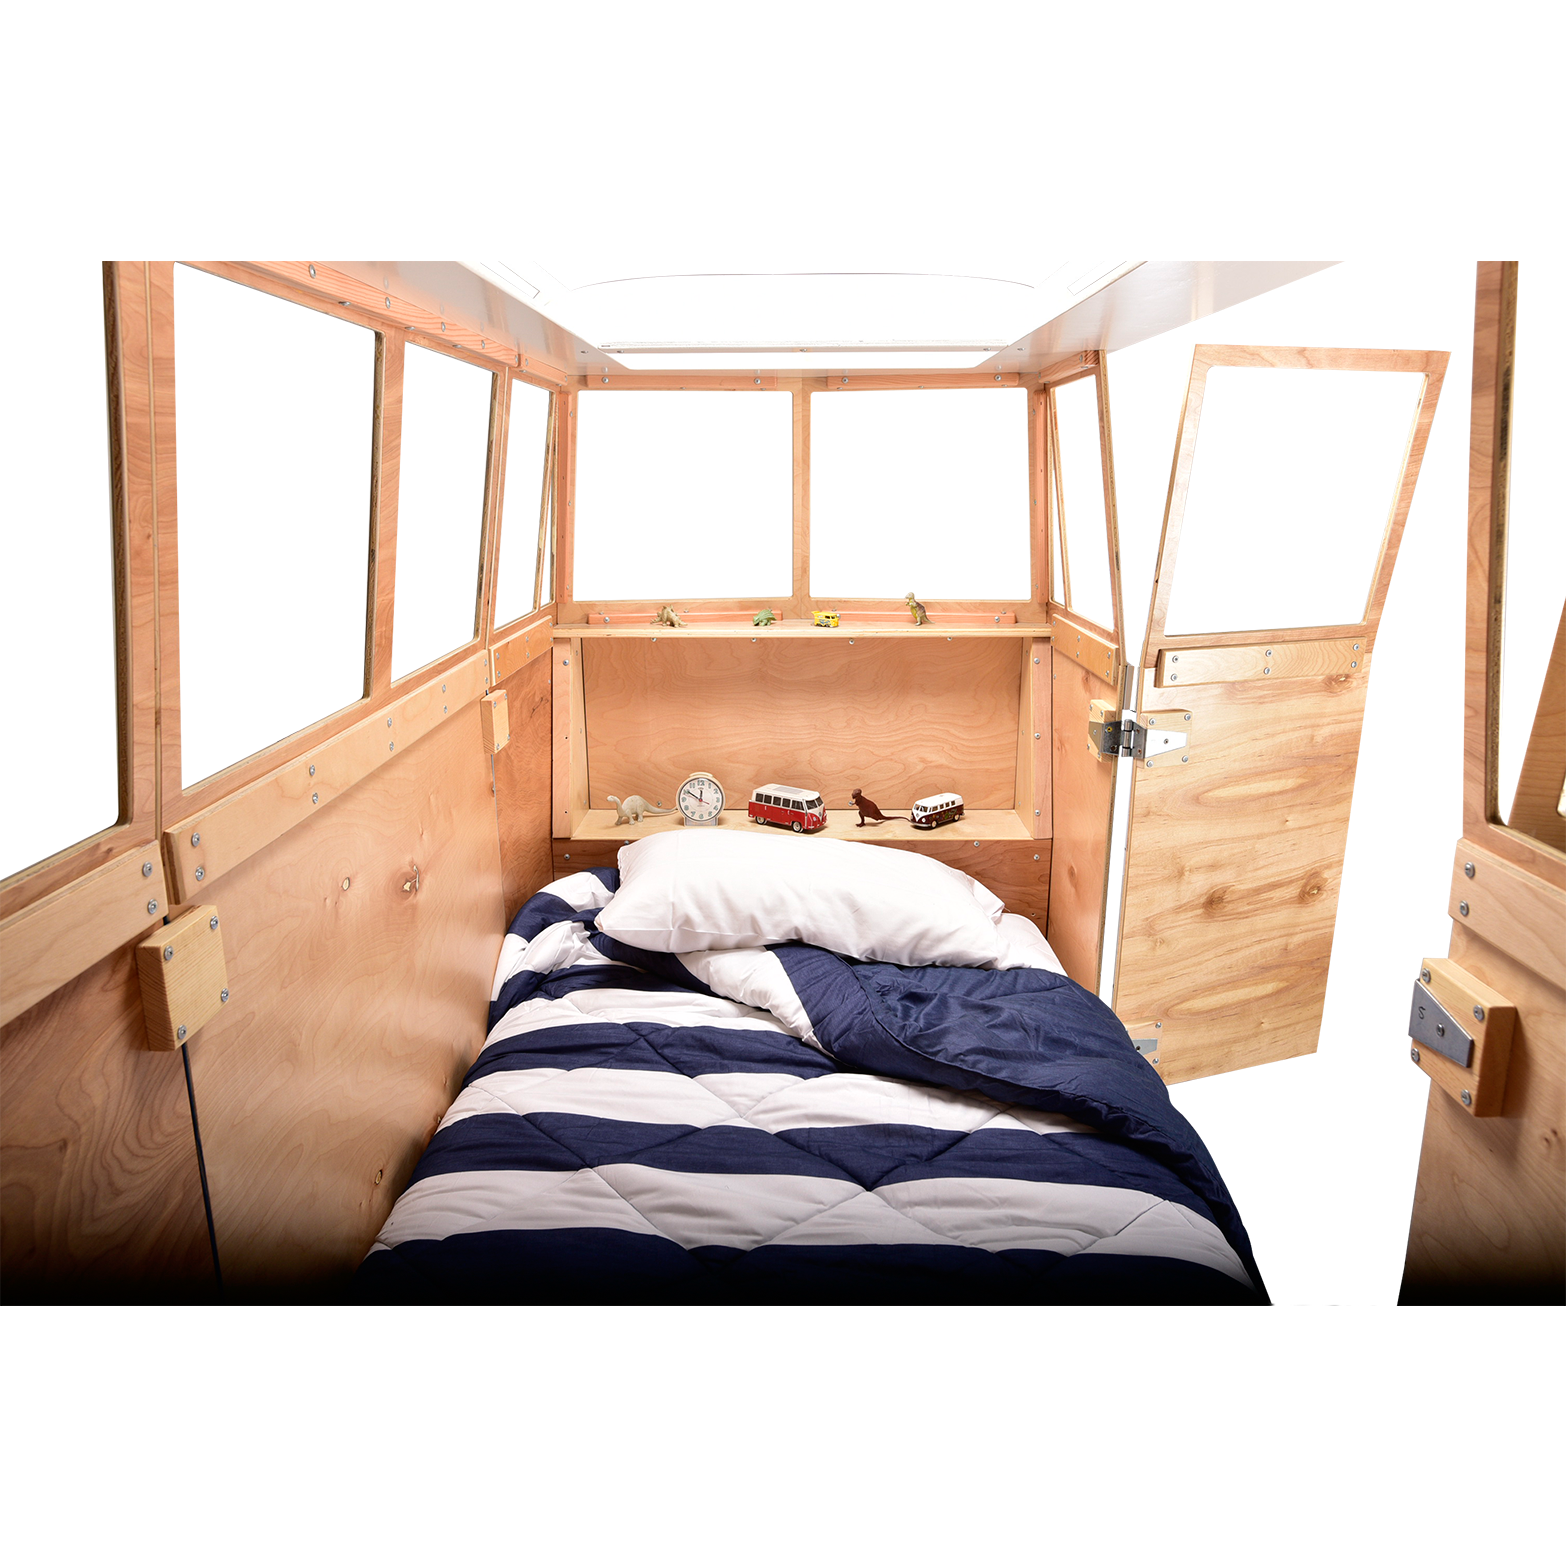 The leon bus by. Clipart sleeping cozy bed